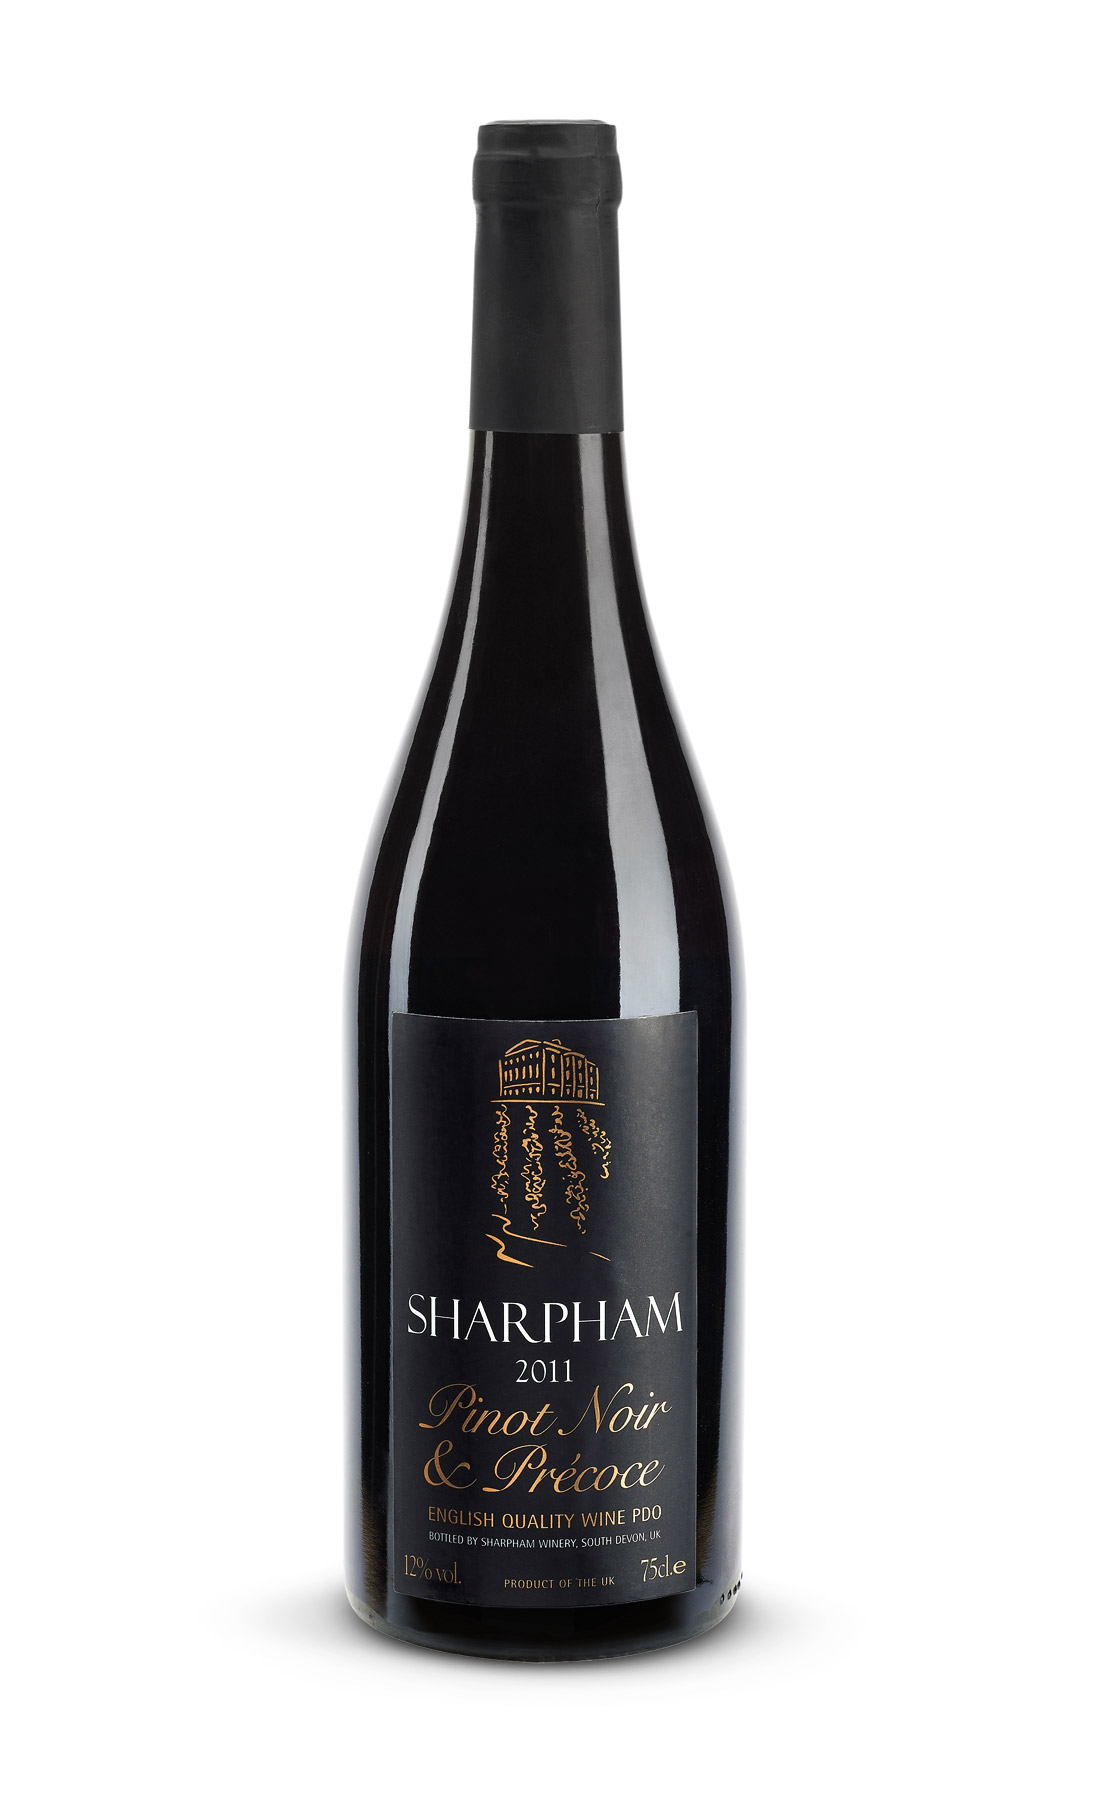 Sharpham Pinot Noir bottle shot